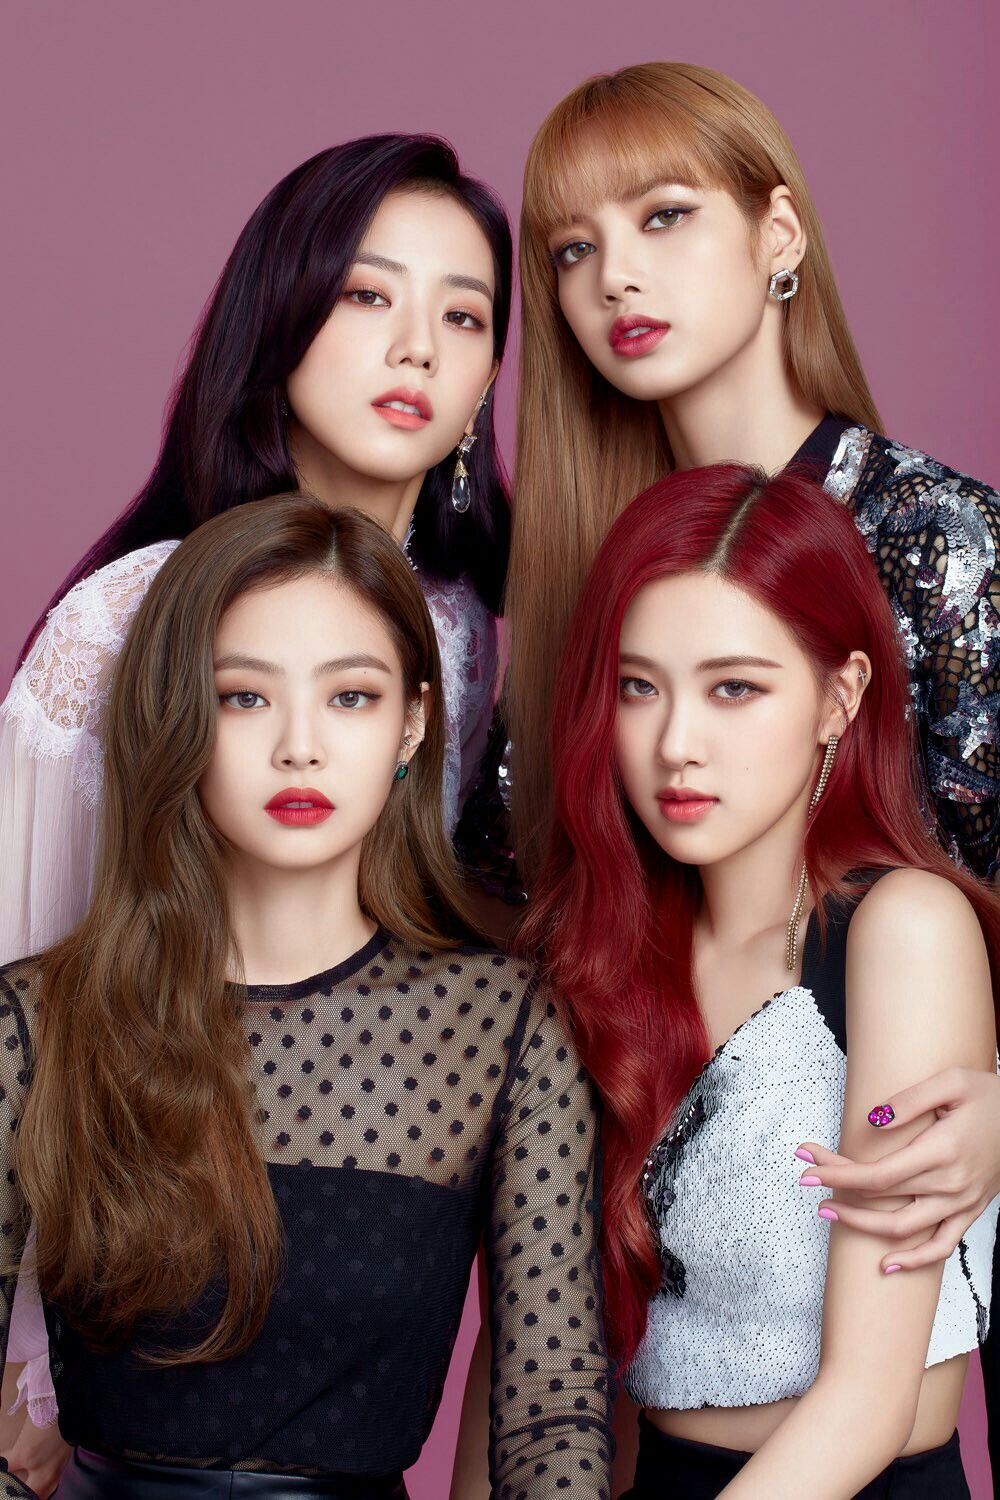 Blackpink On K-pop's Rise To Fame In The West